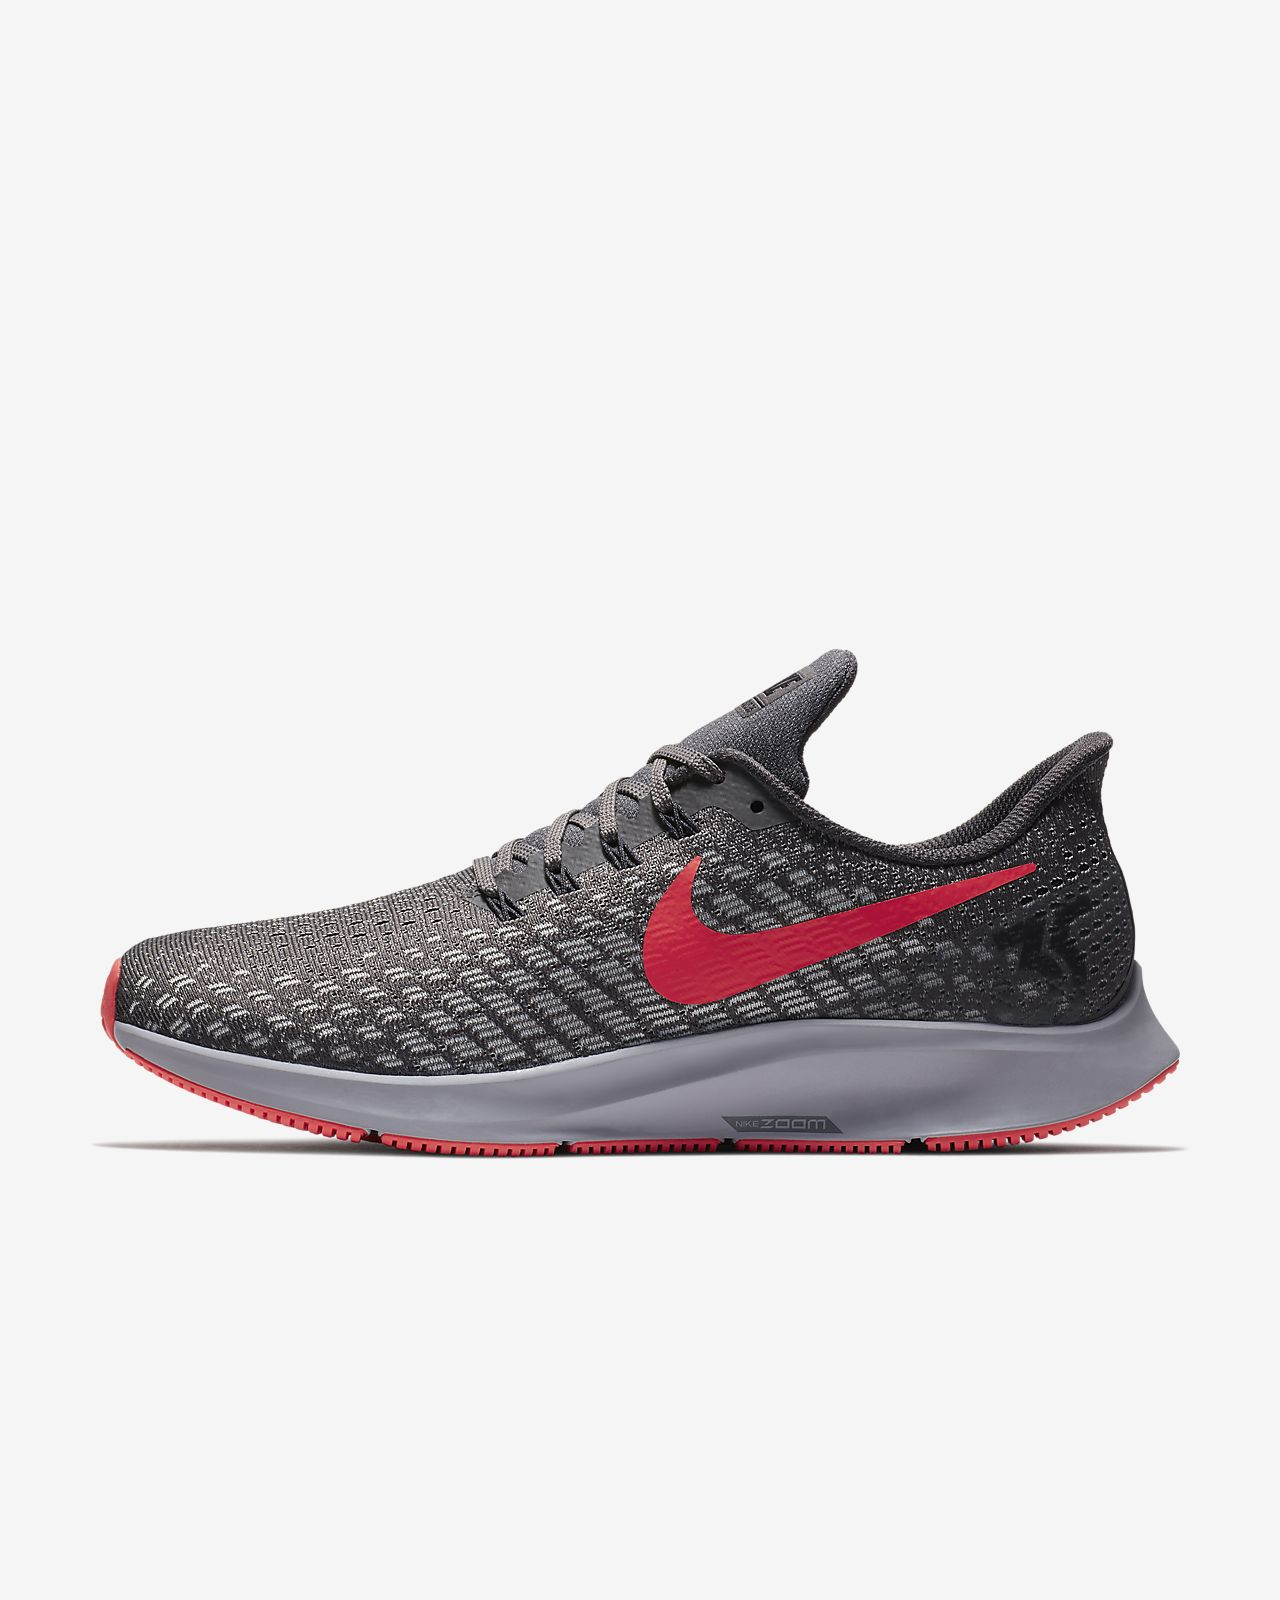 Chaussure de running Nike Air Zoom Pegasus 35 pour Homme